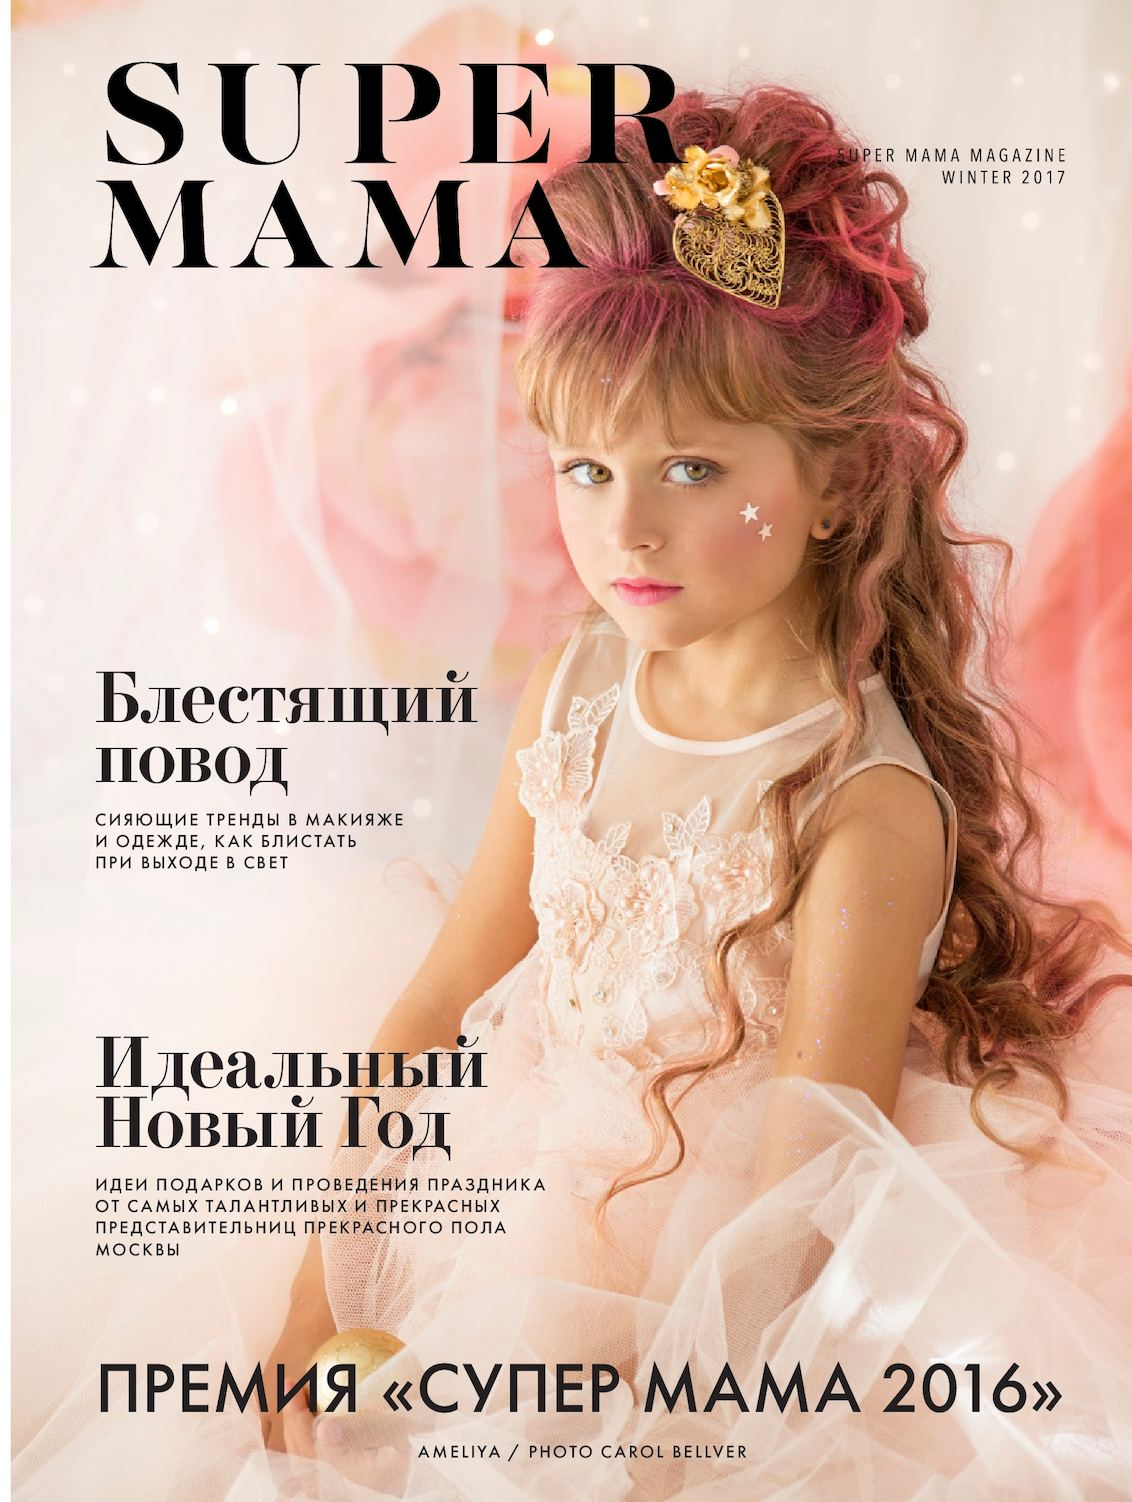 Super Mama Issuu 1 Moscow 3